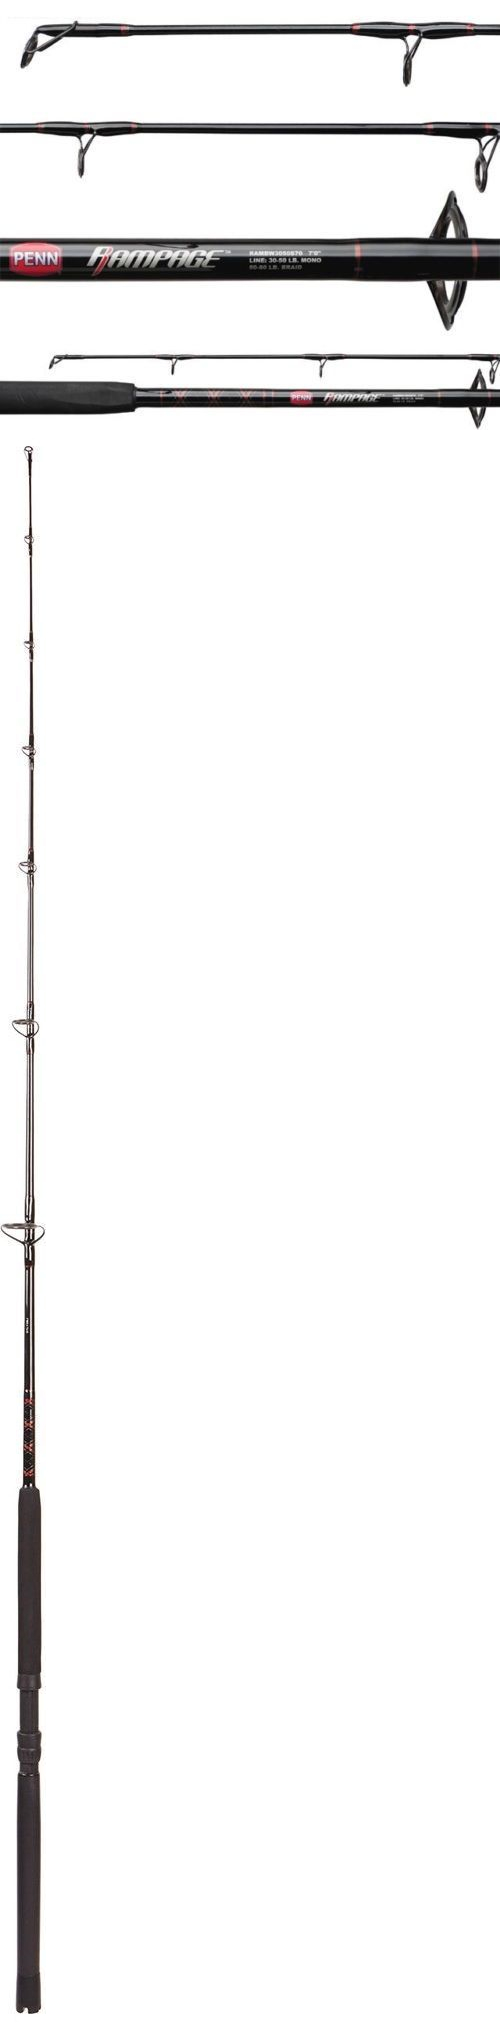 Saltwater Rods 179948: Penn Rambw1530s70 Rampage Boat 7 Spinning Rod Fishing Pole Batsf1220s70 New -> BUY IT NOW ONLY: $57.87 on eBay!